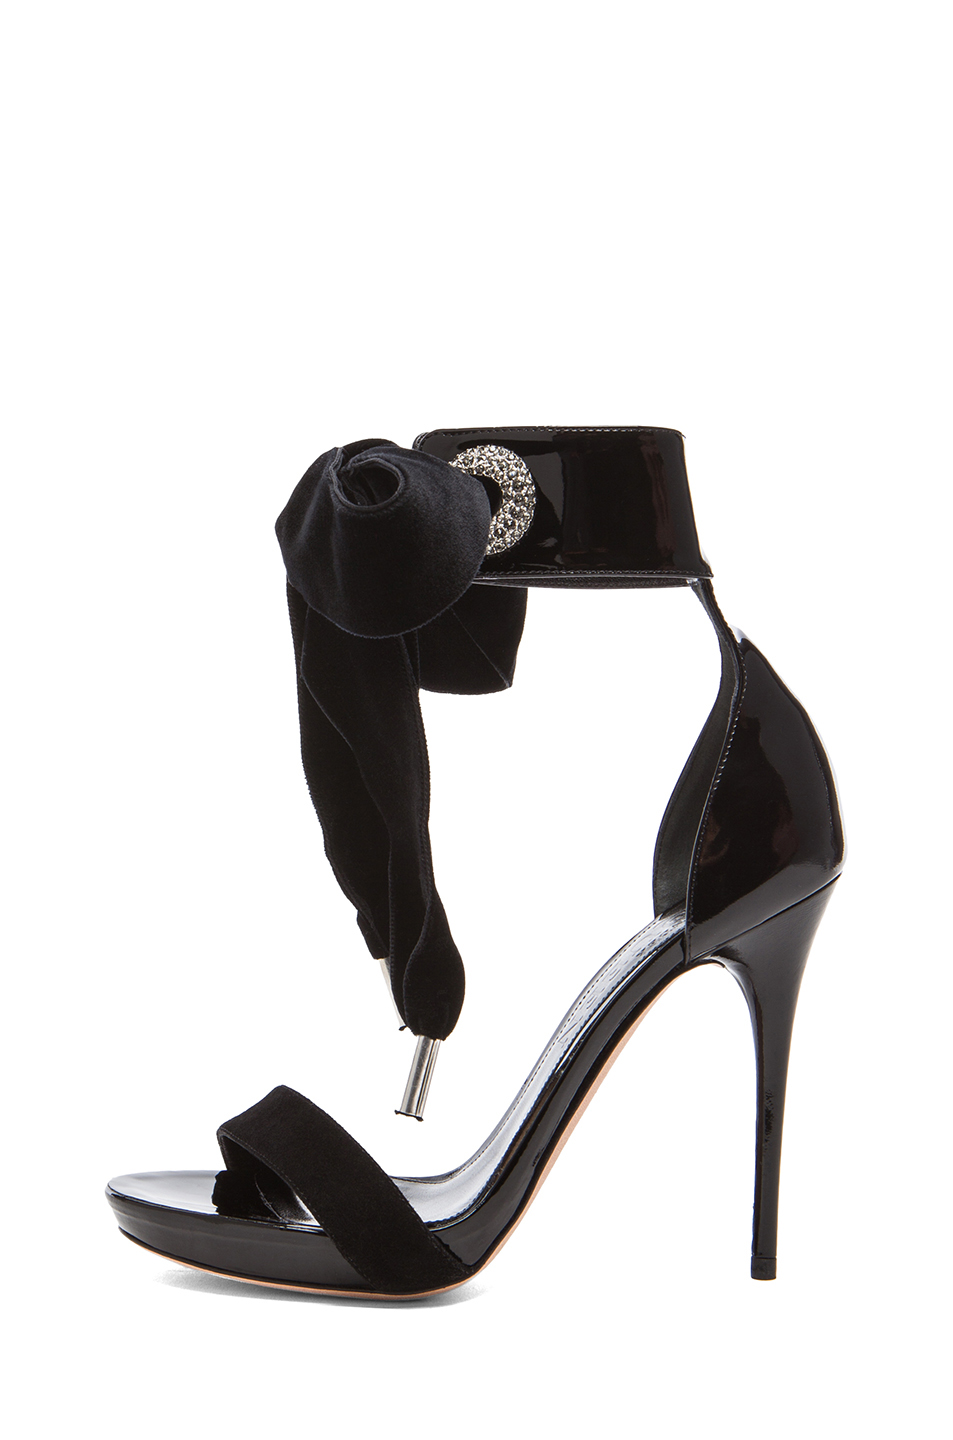 Diamante eyelet leather sandals in black